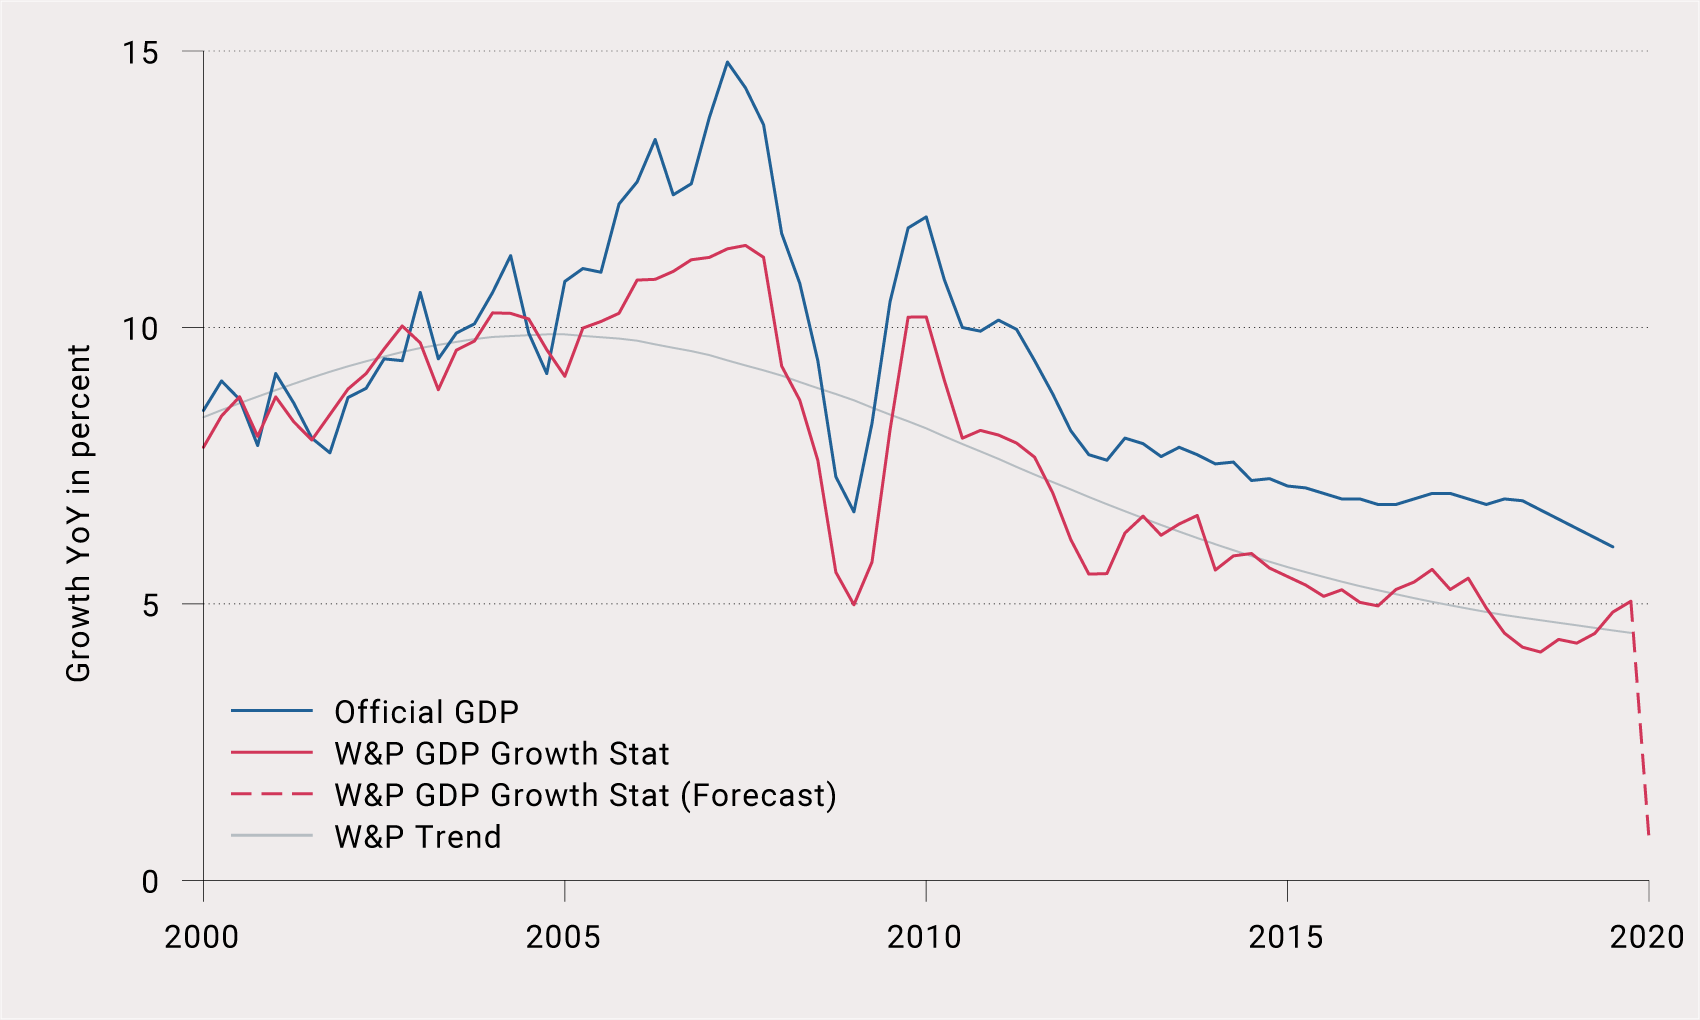 W&P GDP Growth Stat for China